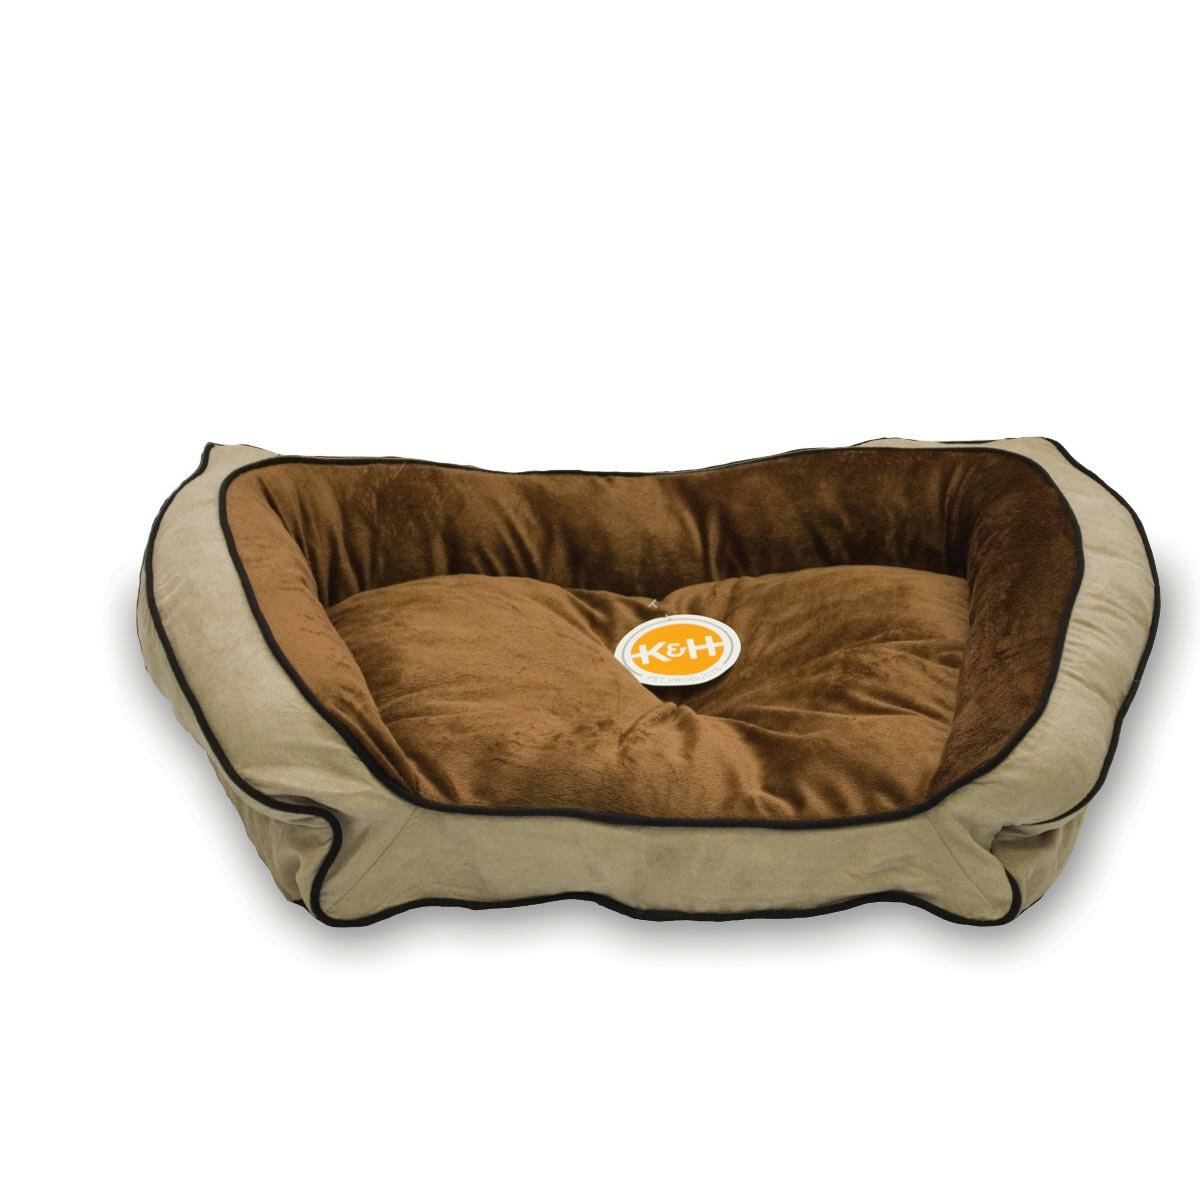 K H Manufacturing Bolster Couch Dog Bed Wayfair